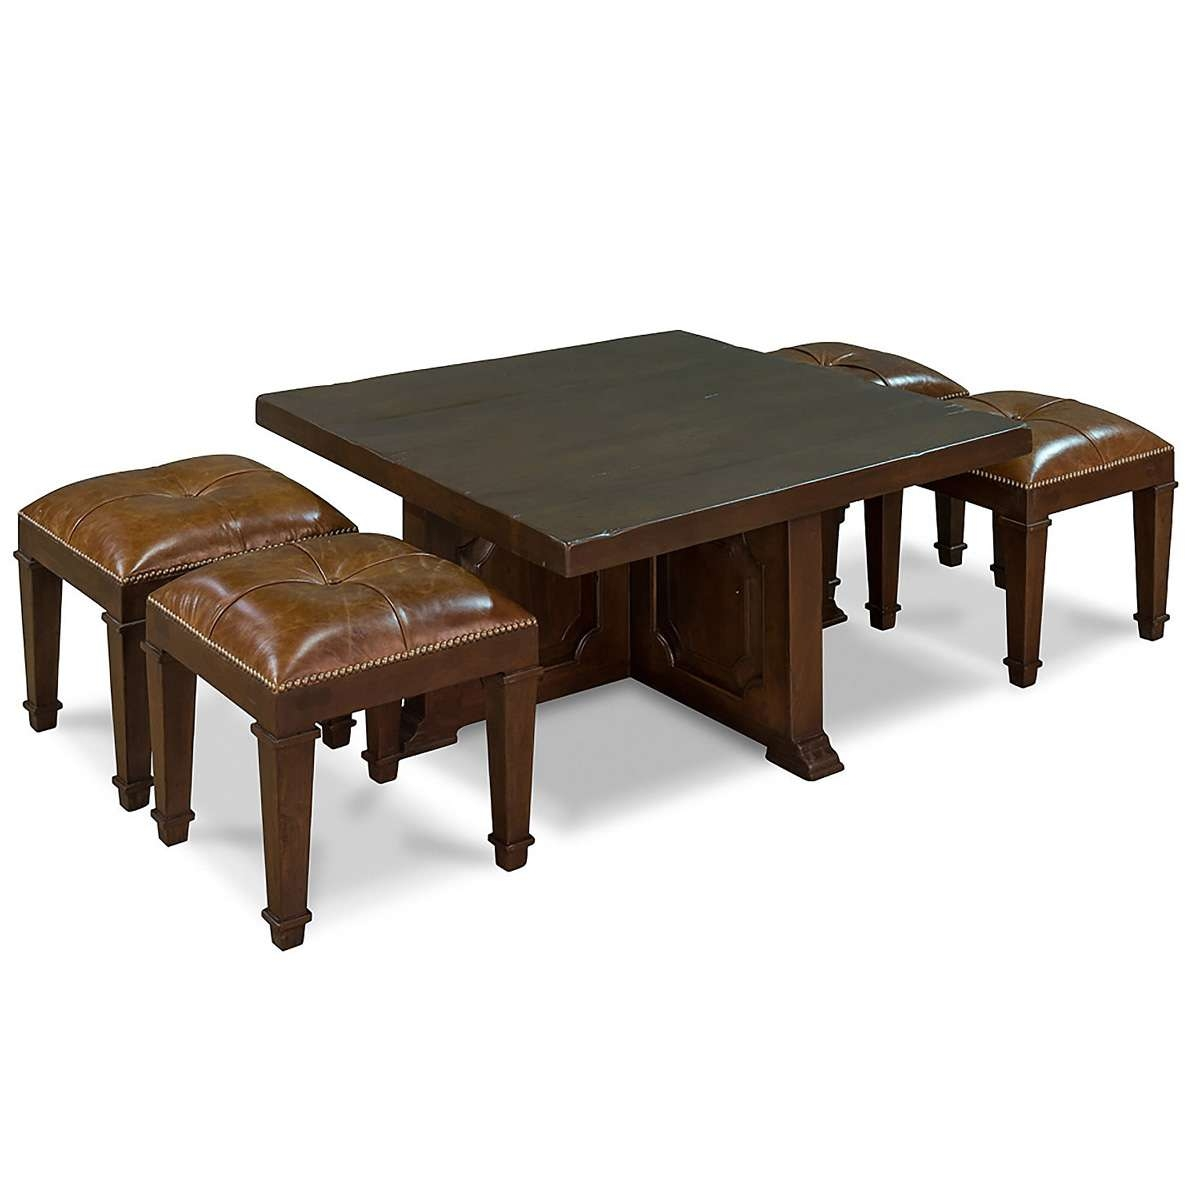 Newest Coffee Tables With Nesting Stools Regarding Coffee Table With 4 Nesting Stools – So That's Cool (View 3 of 20)